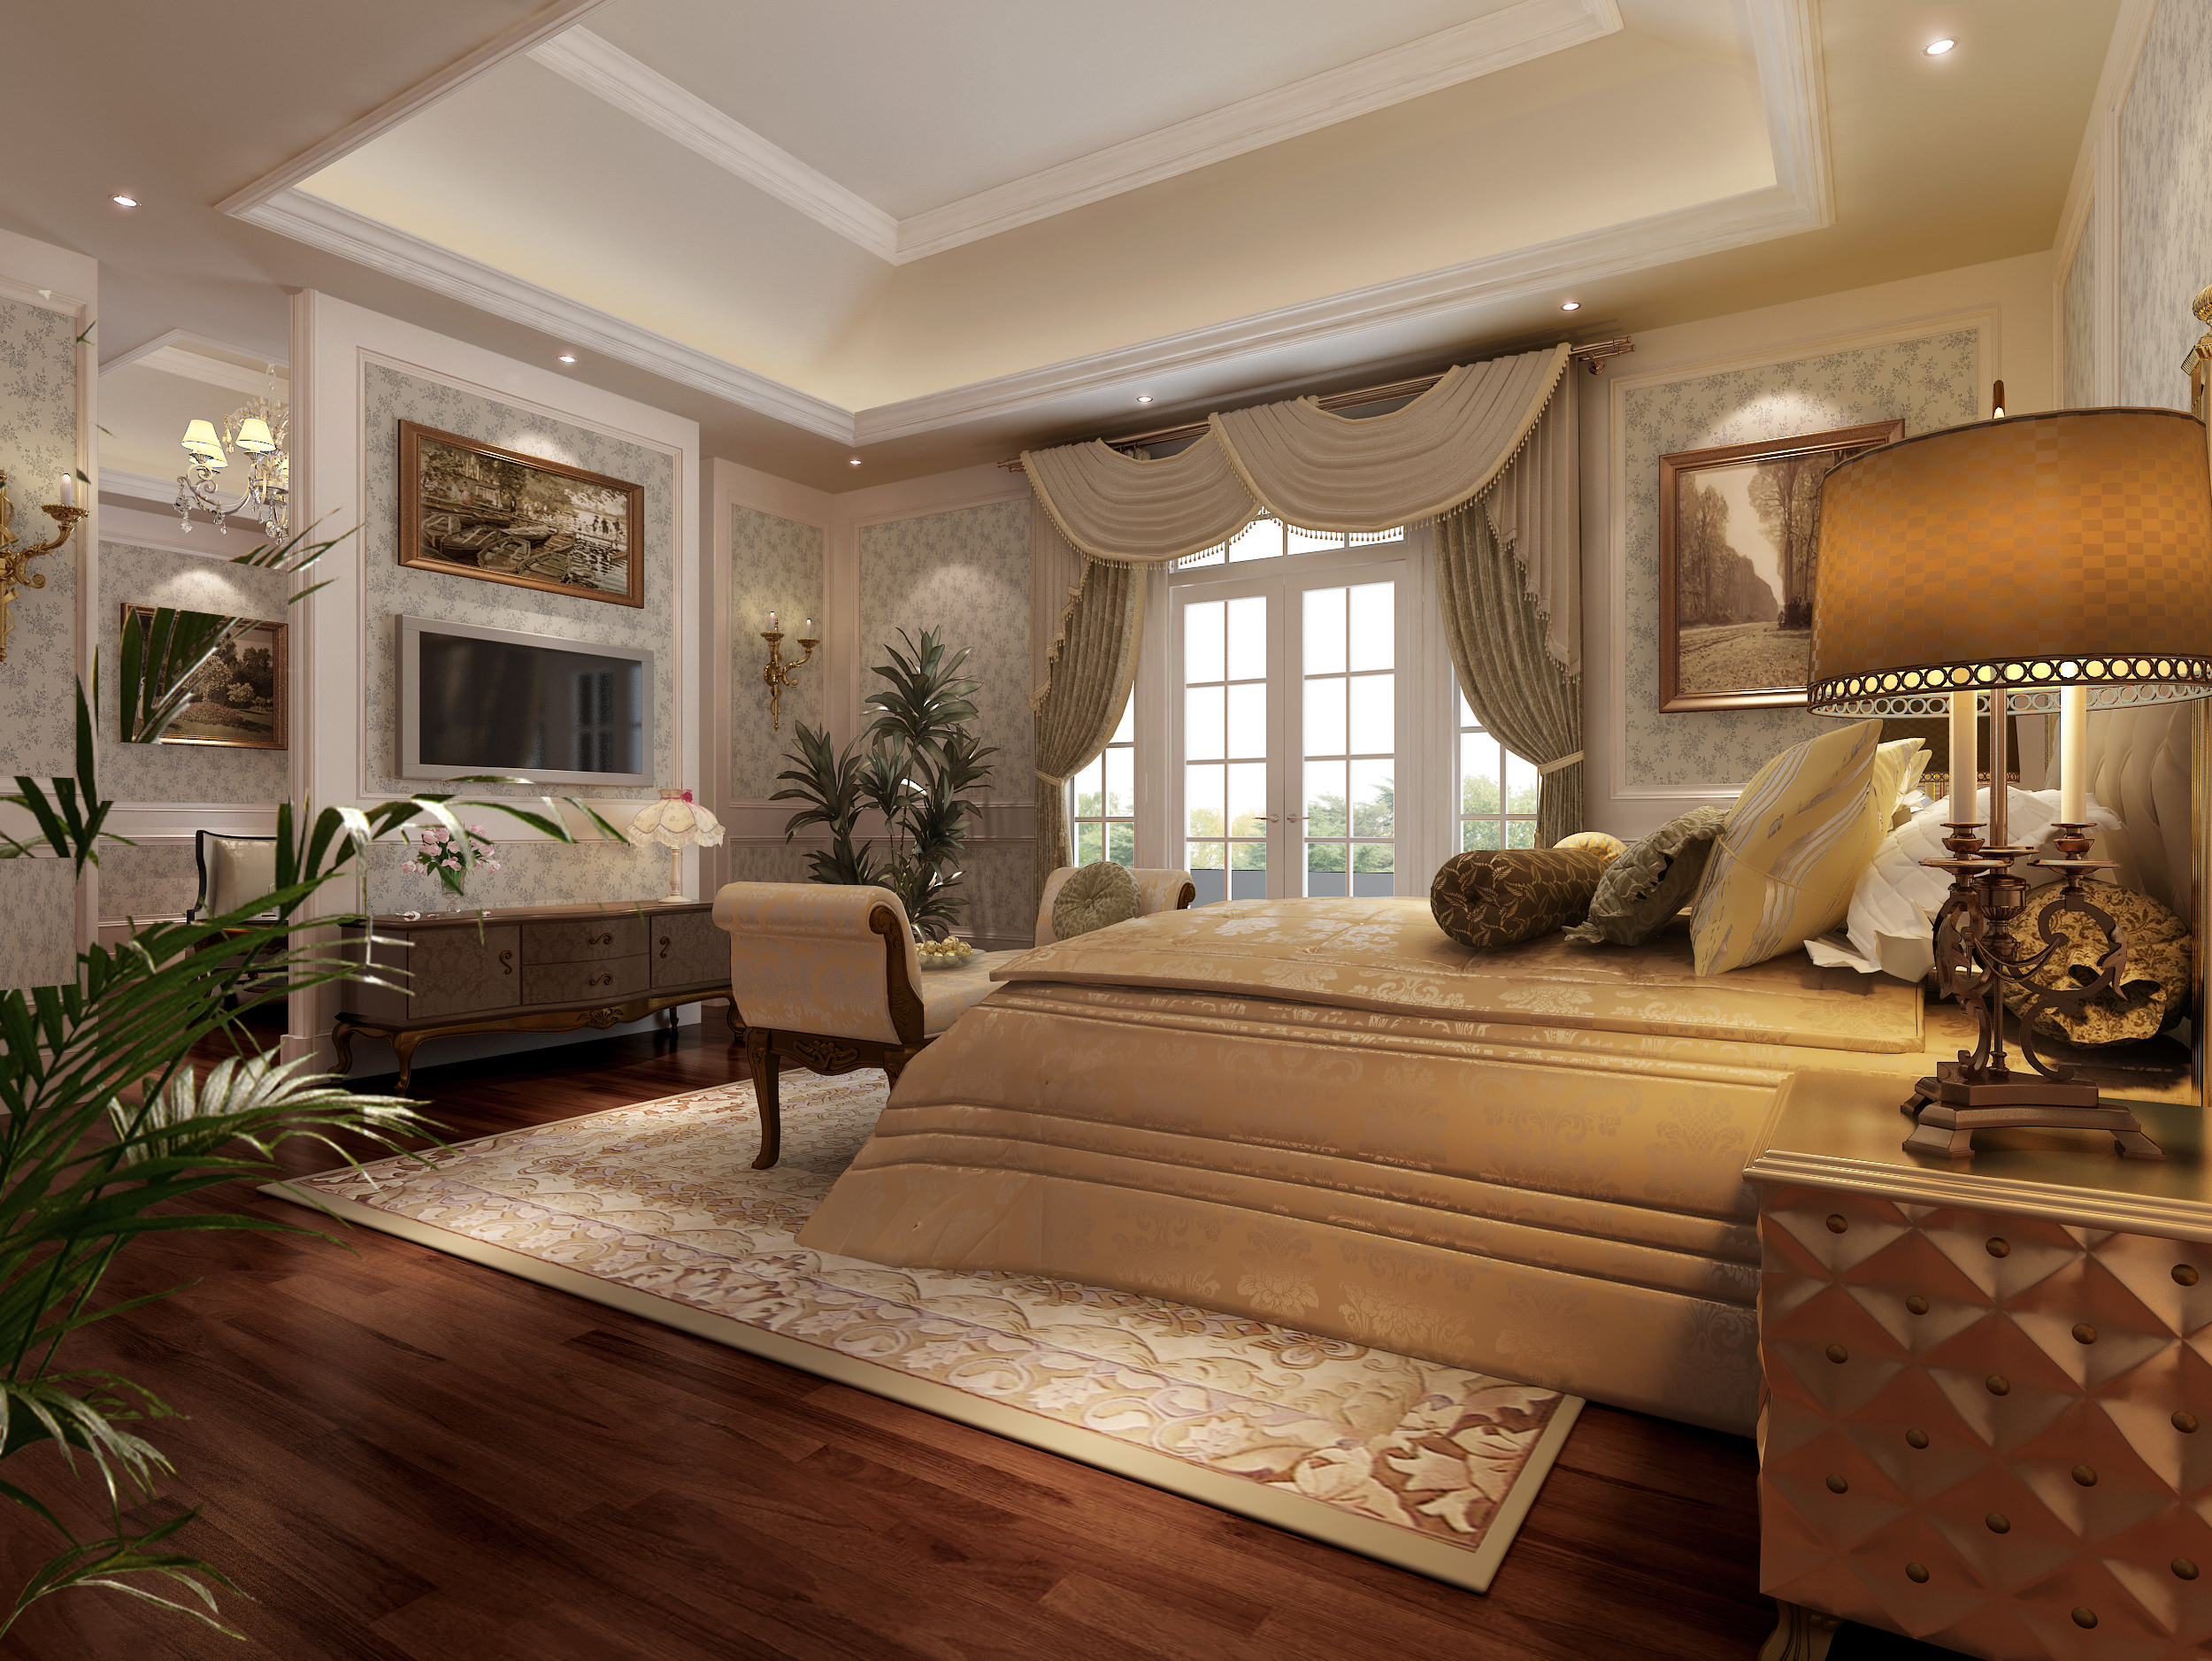 Model Bedroom Living Room And Bedroom Collection 3D Model  Cgtrader